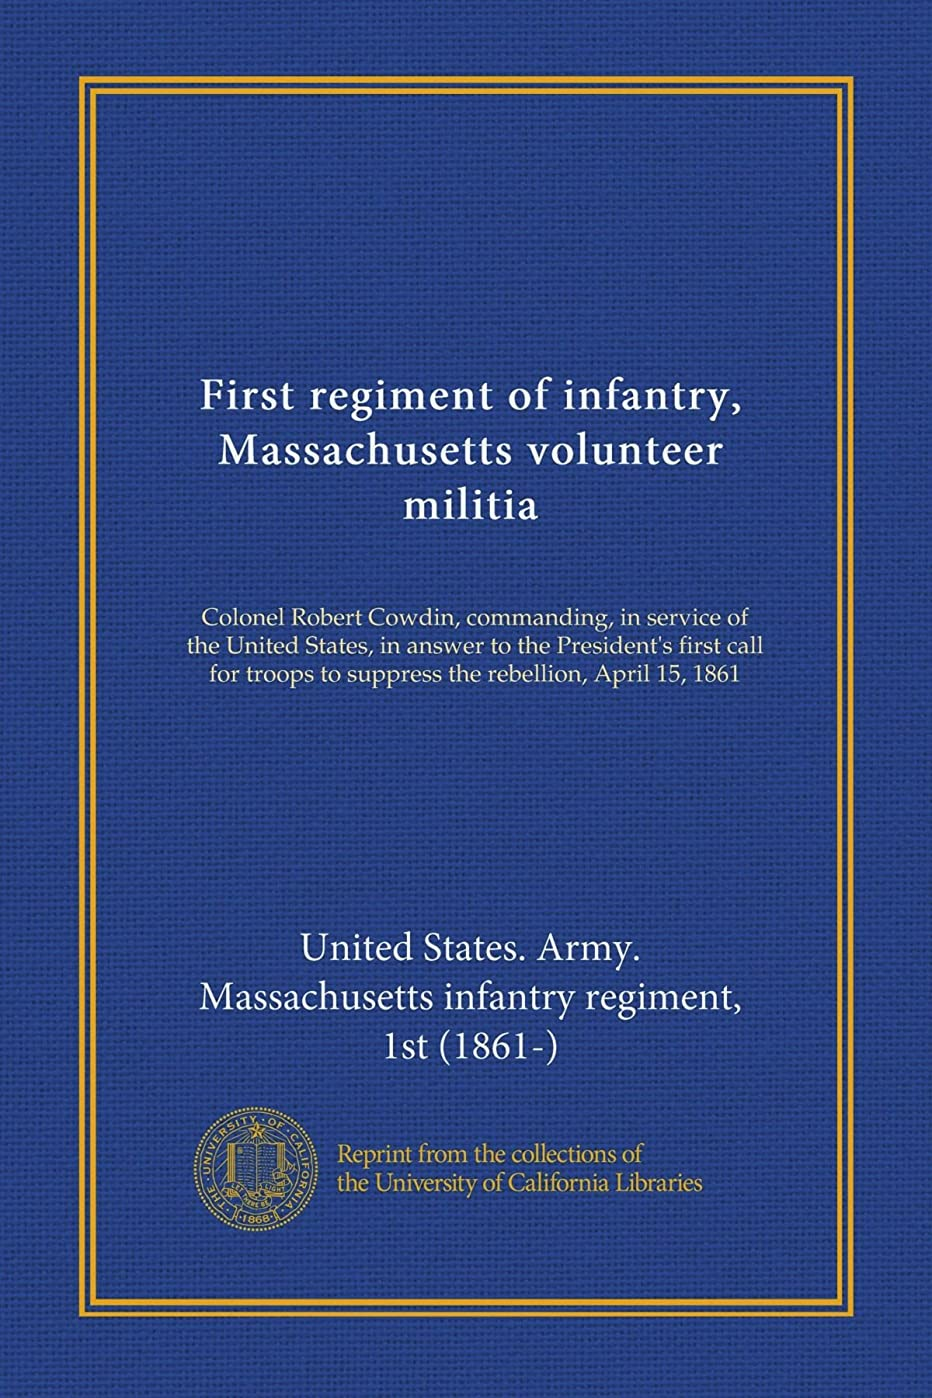 のれん無臭フォーカスFirst regiment of infantry, Massachusetts volunteer militia: Colonel Robert Cowdin, commanding, in service of the United States, in answer to the President's first call for troops to suppress the rebellion, April 15, 1861